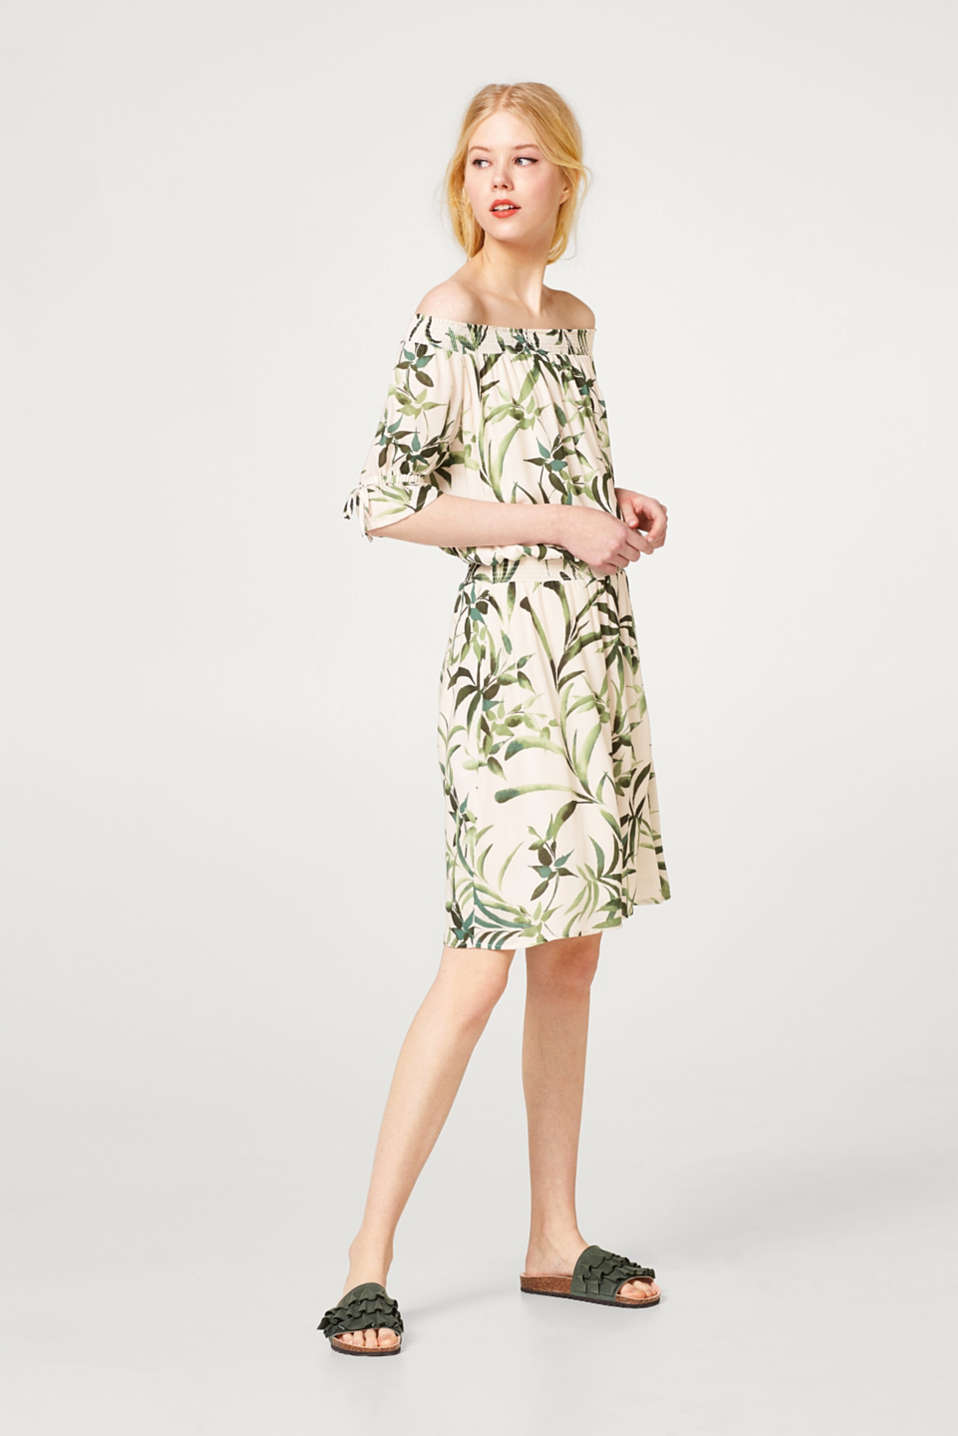 Off-the-shoulder dress with a leaf print